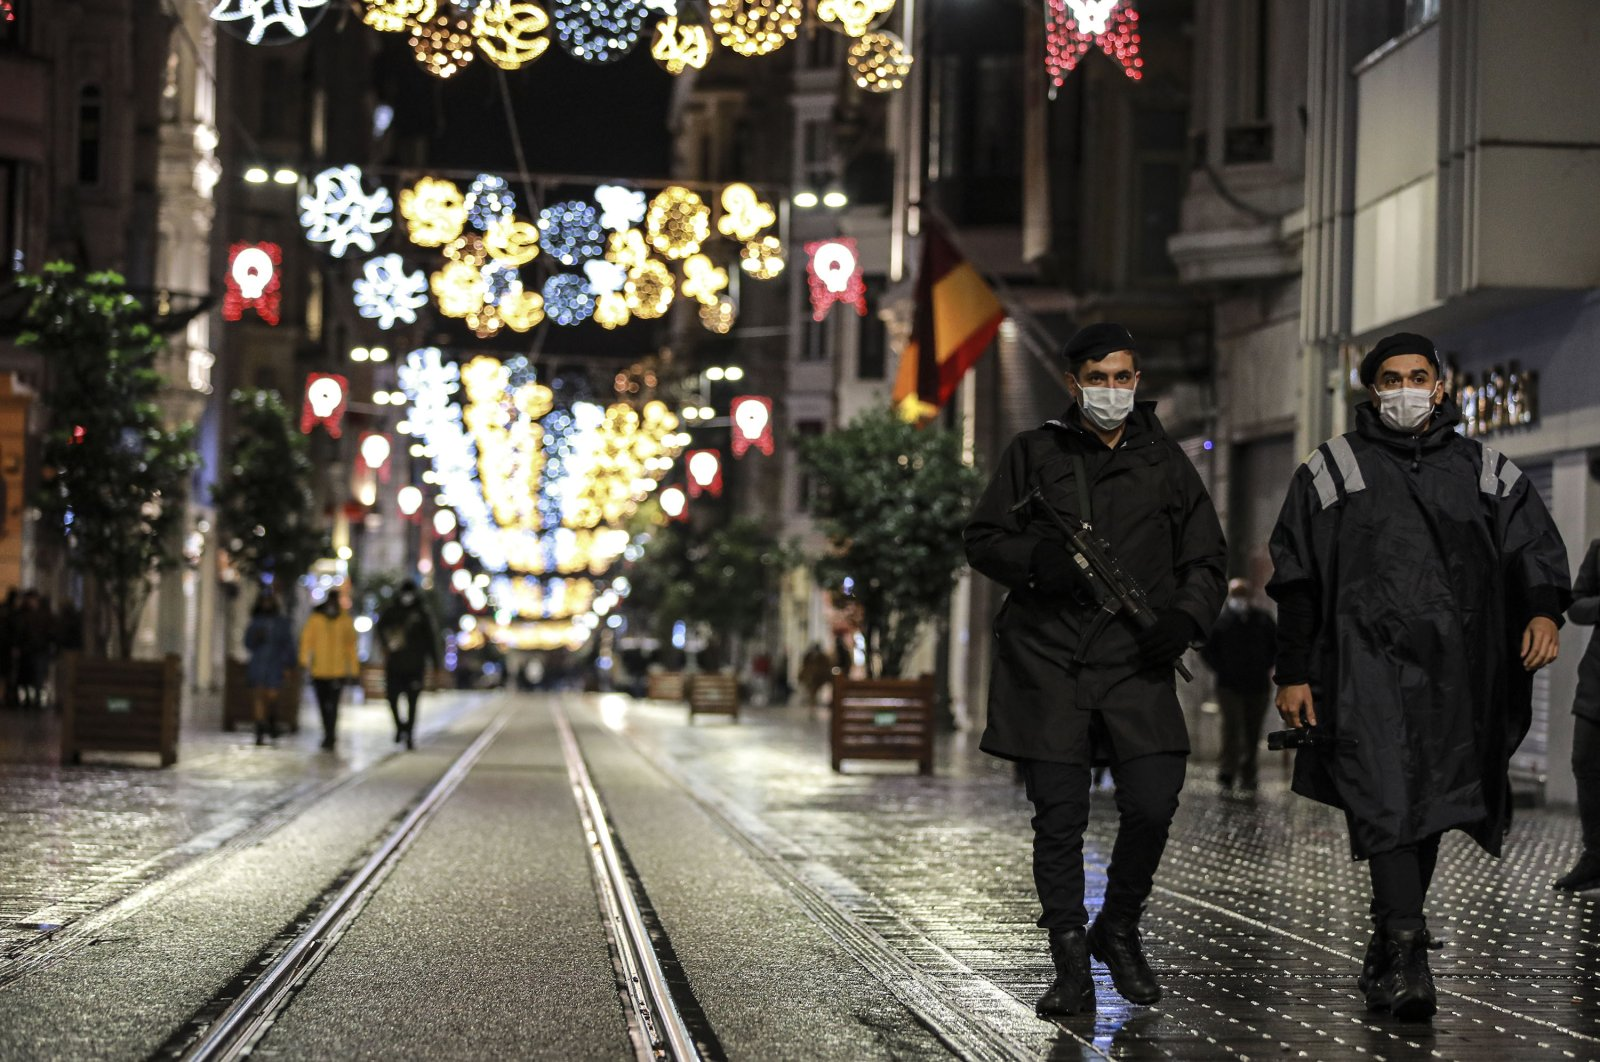 Police officers patrol Istiklal Street, one of the main shopping streets in Istanbul, minutes into the partial lockdown, part of the new measures to try curb the spread of the coronavirus, Nov. 21, 2020. (AP Photo)